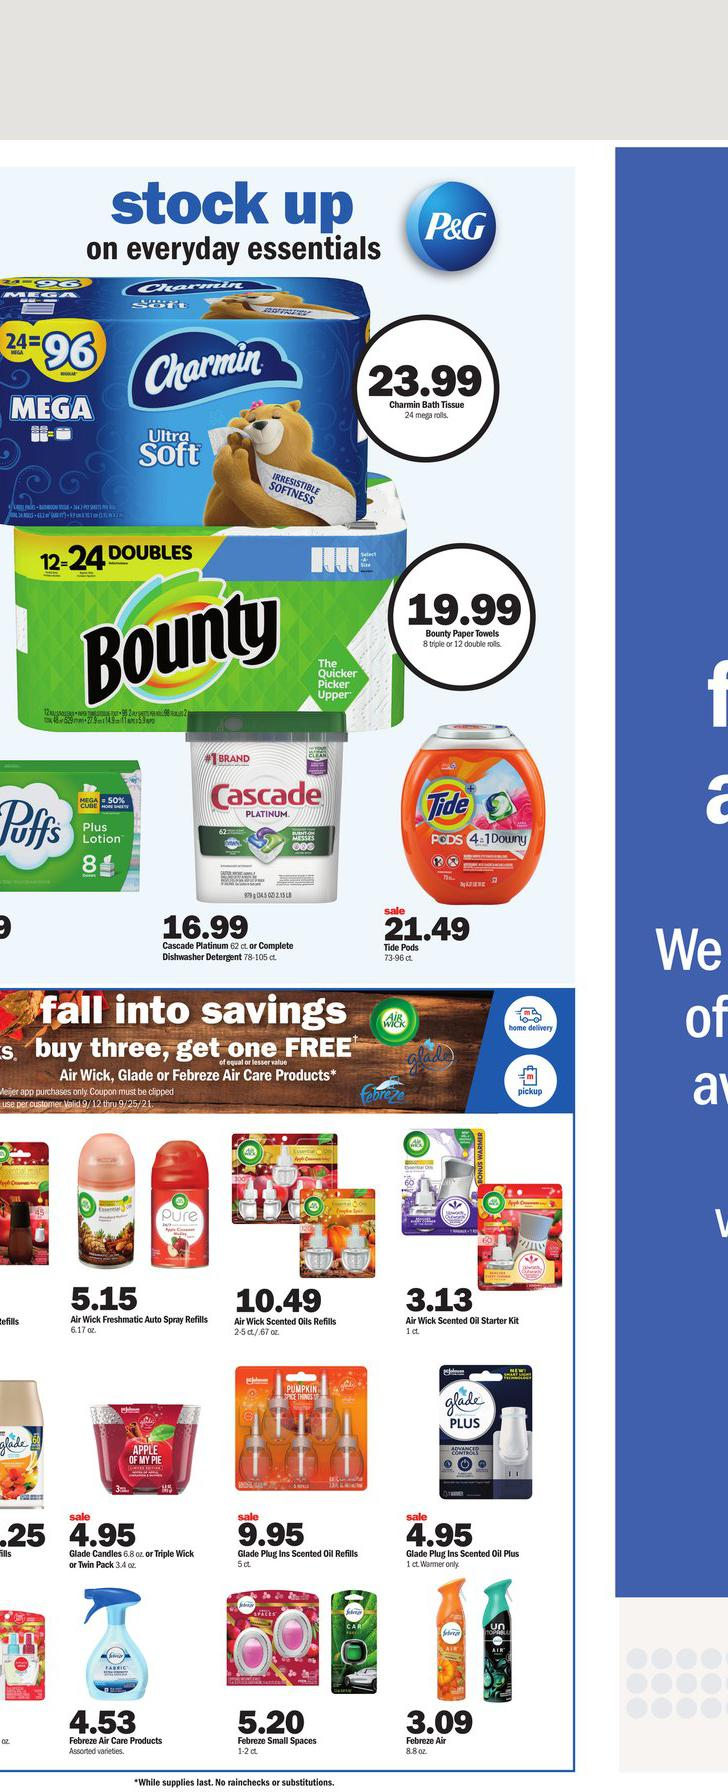 12.09.2021 Meijer ad 20. page